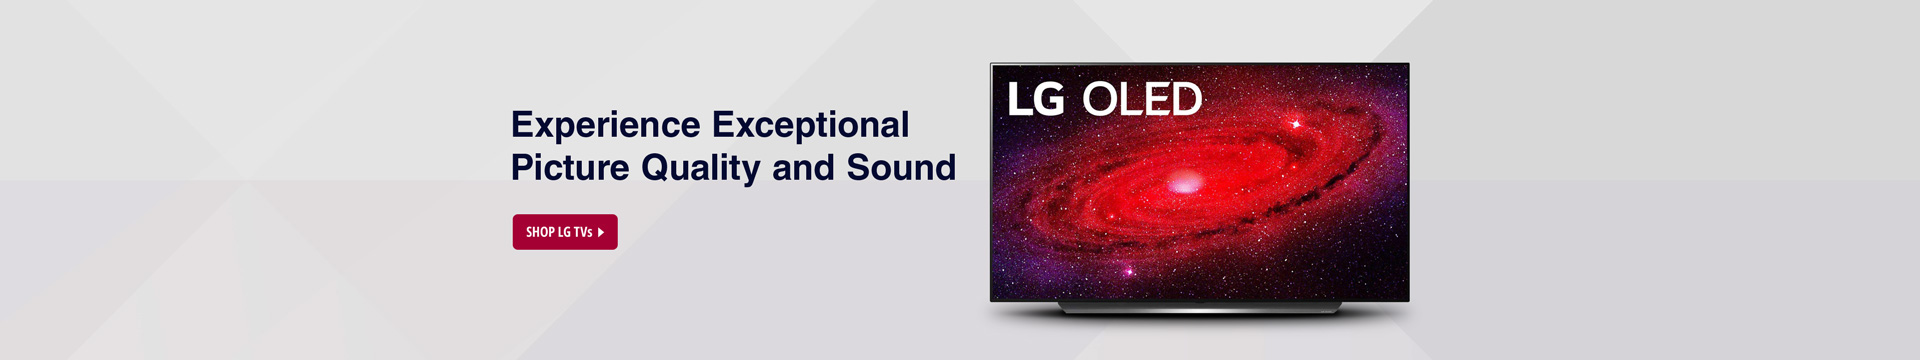 Experience Exceptional Picture Quality and Sound